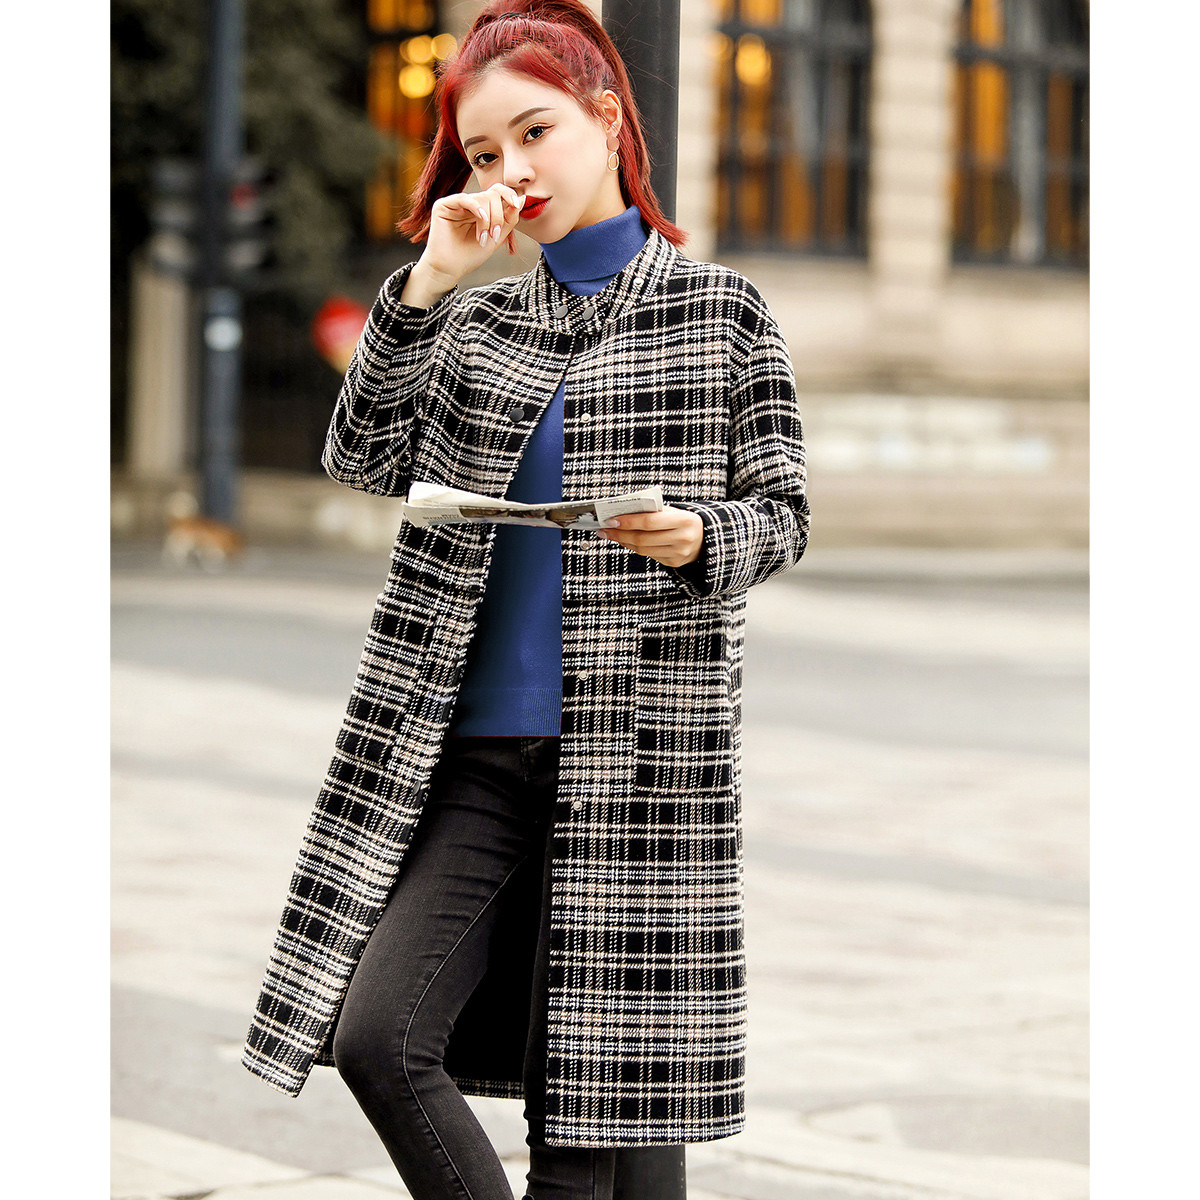 Mo Han Yimeis simple and fashionable Plaid cocoon shaped thin and versatile long coat